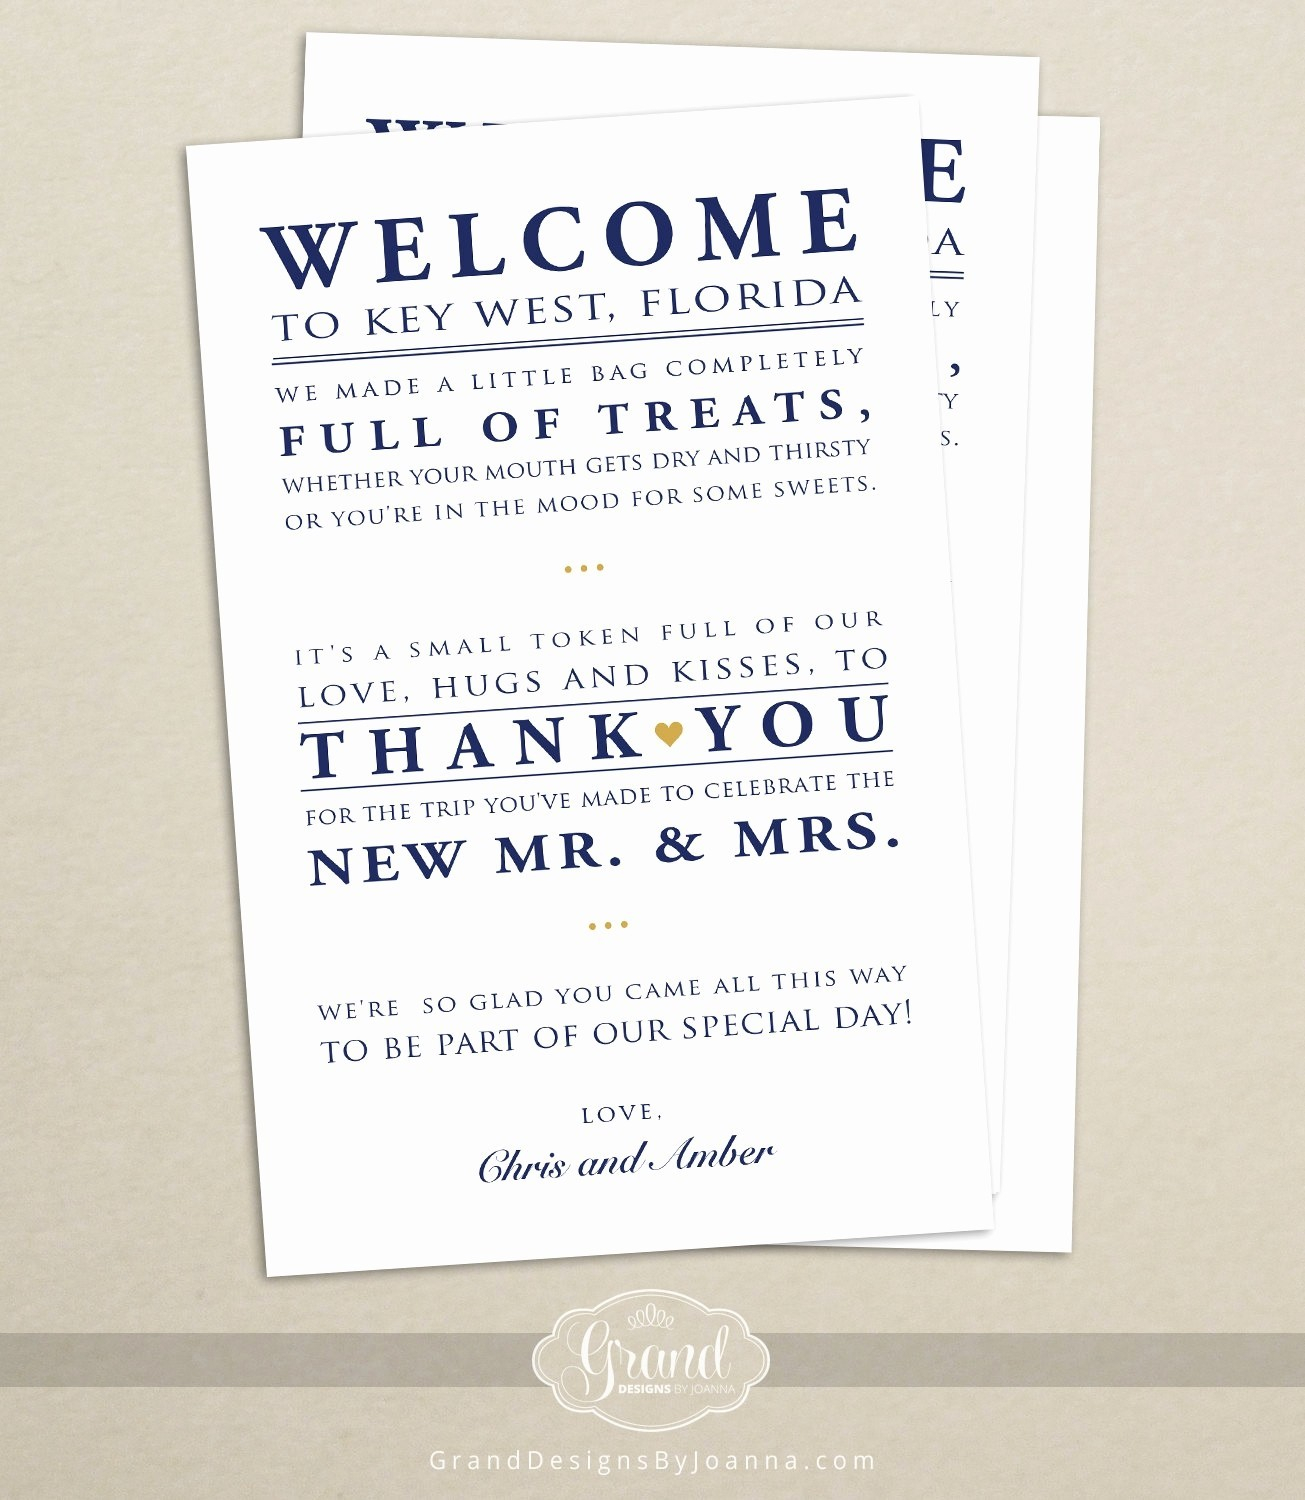 Welcome Bag Letter Template - Wel E Letter for Hotel Guests Wedding